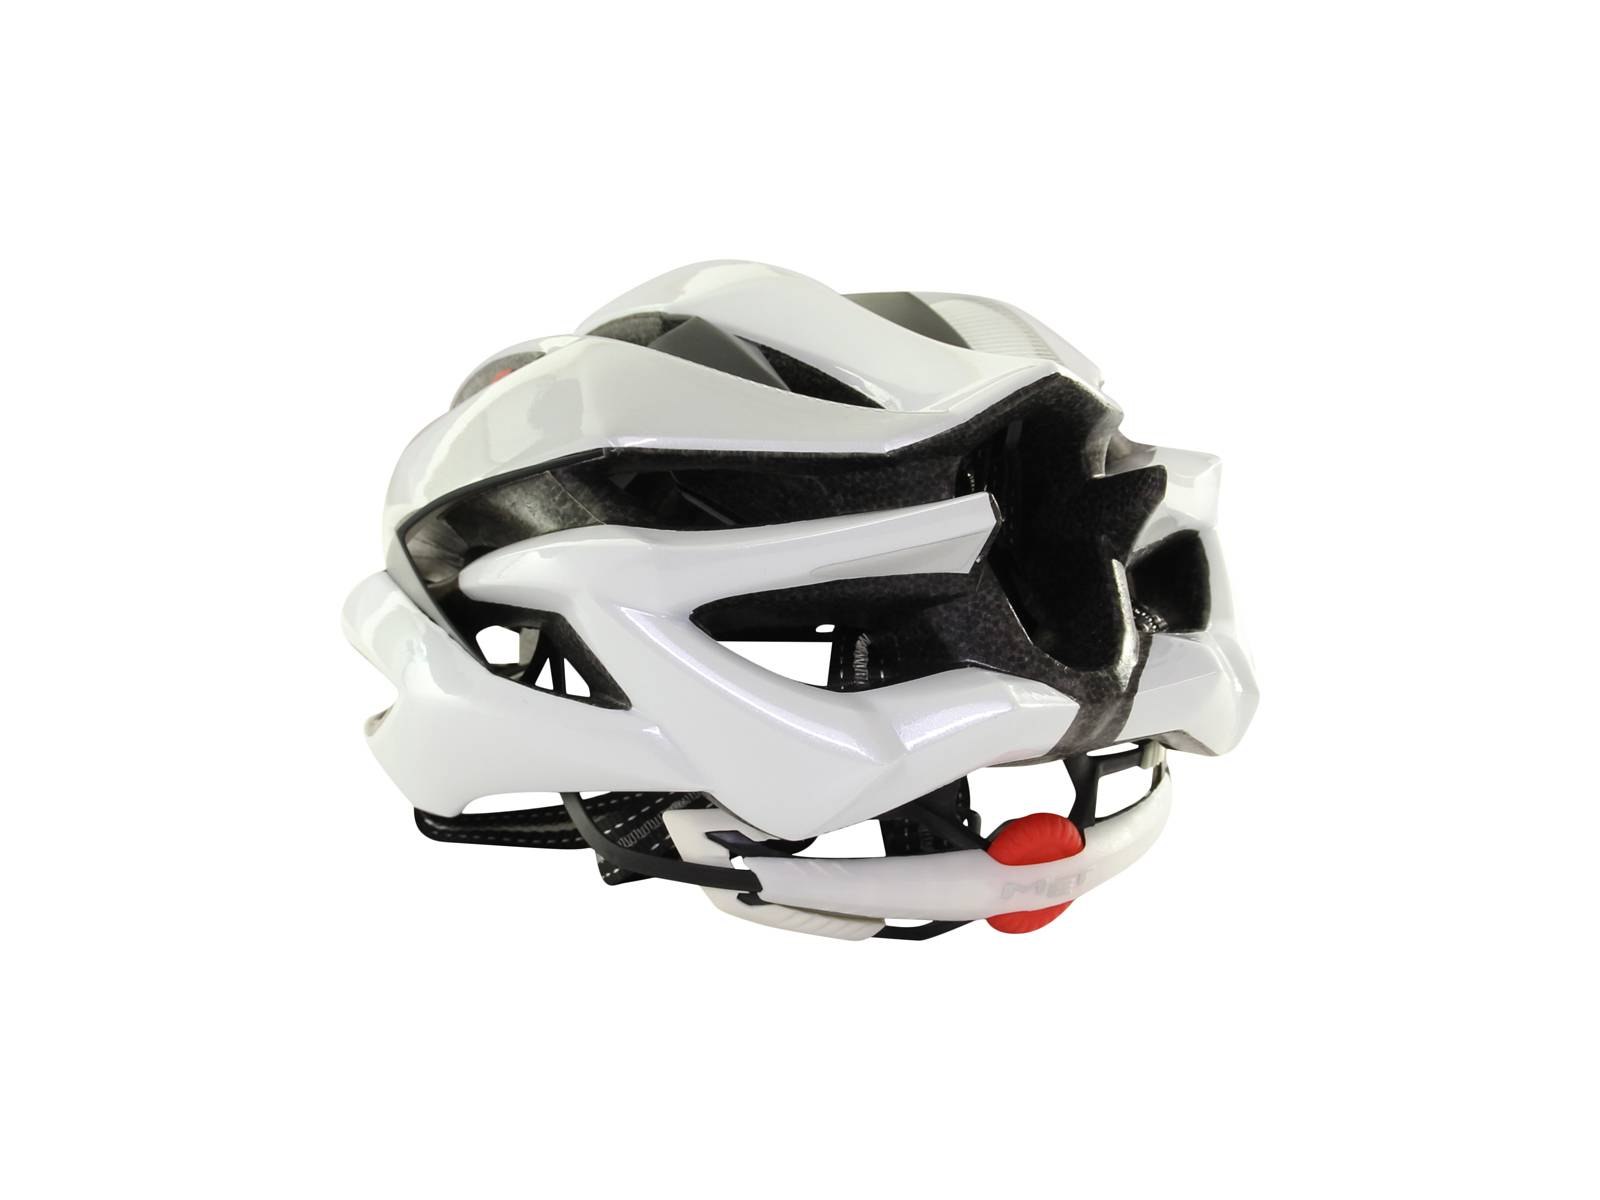 met sine thesis gel pads Buy met sine-thesis spare helmet pad set from £1499 price match + free  click & collect & home delivery.